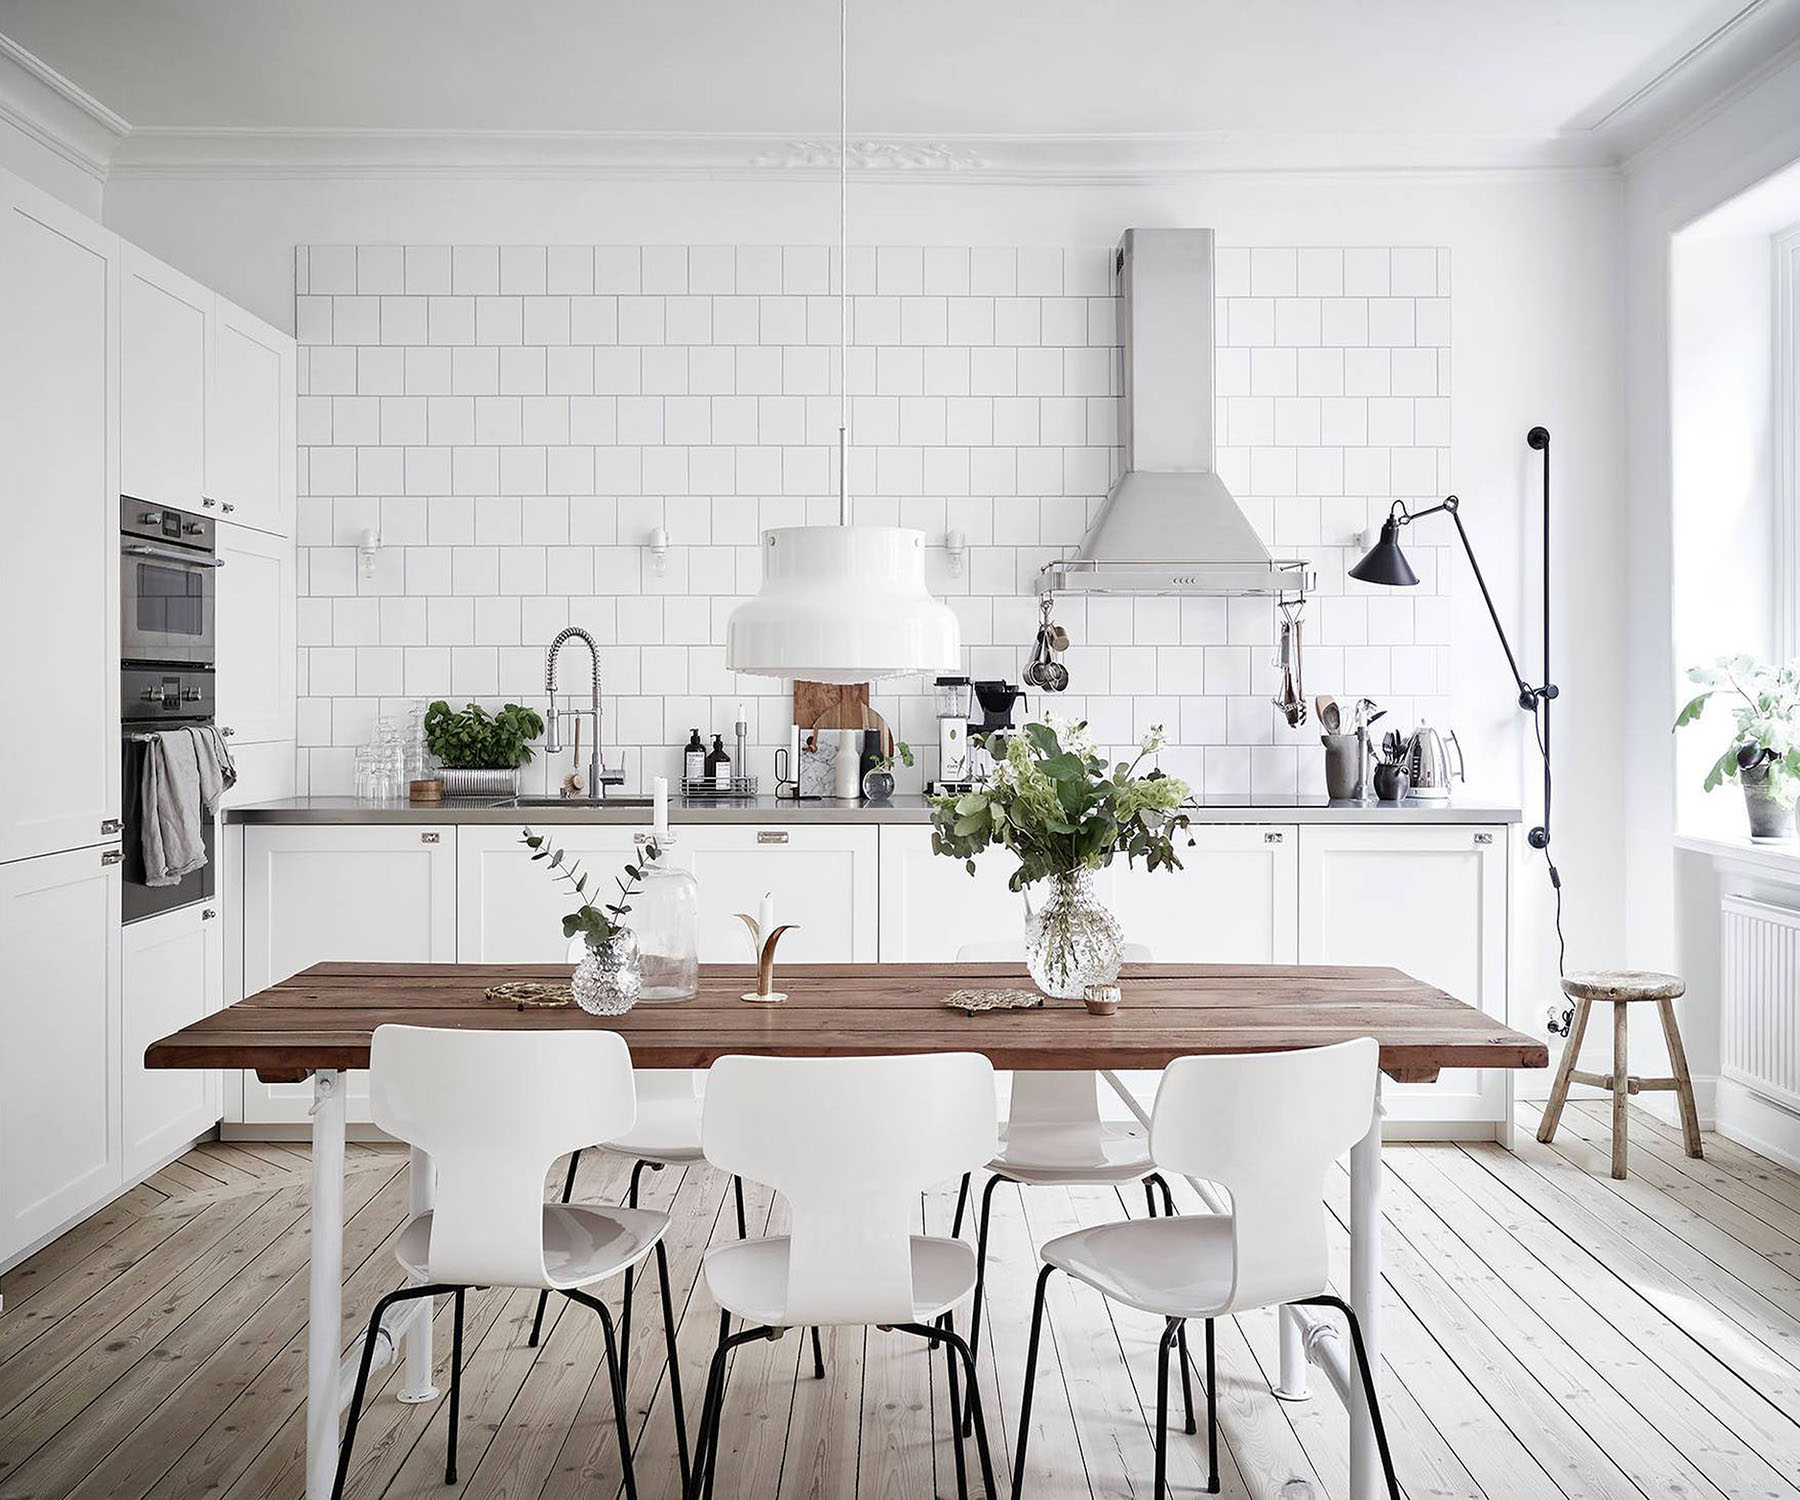 Country Kitchen Design Minimalist: Top 10 Tips For Adding Scandinavian Style To Your Home